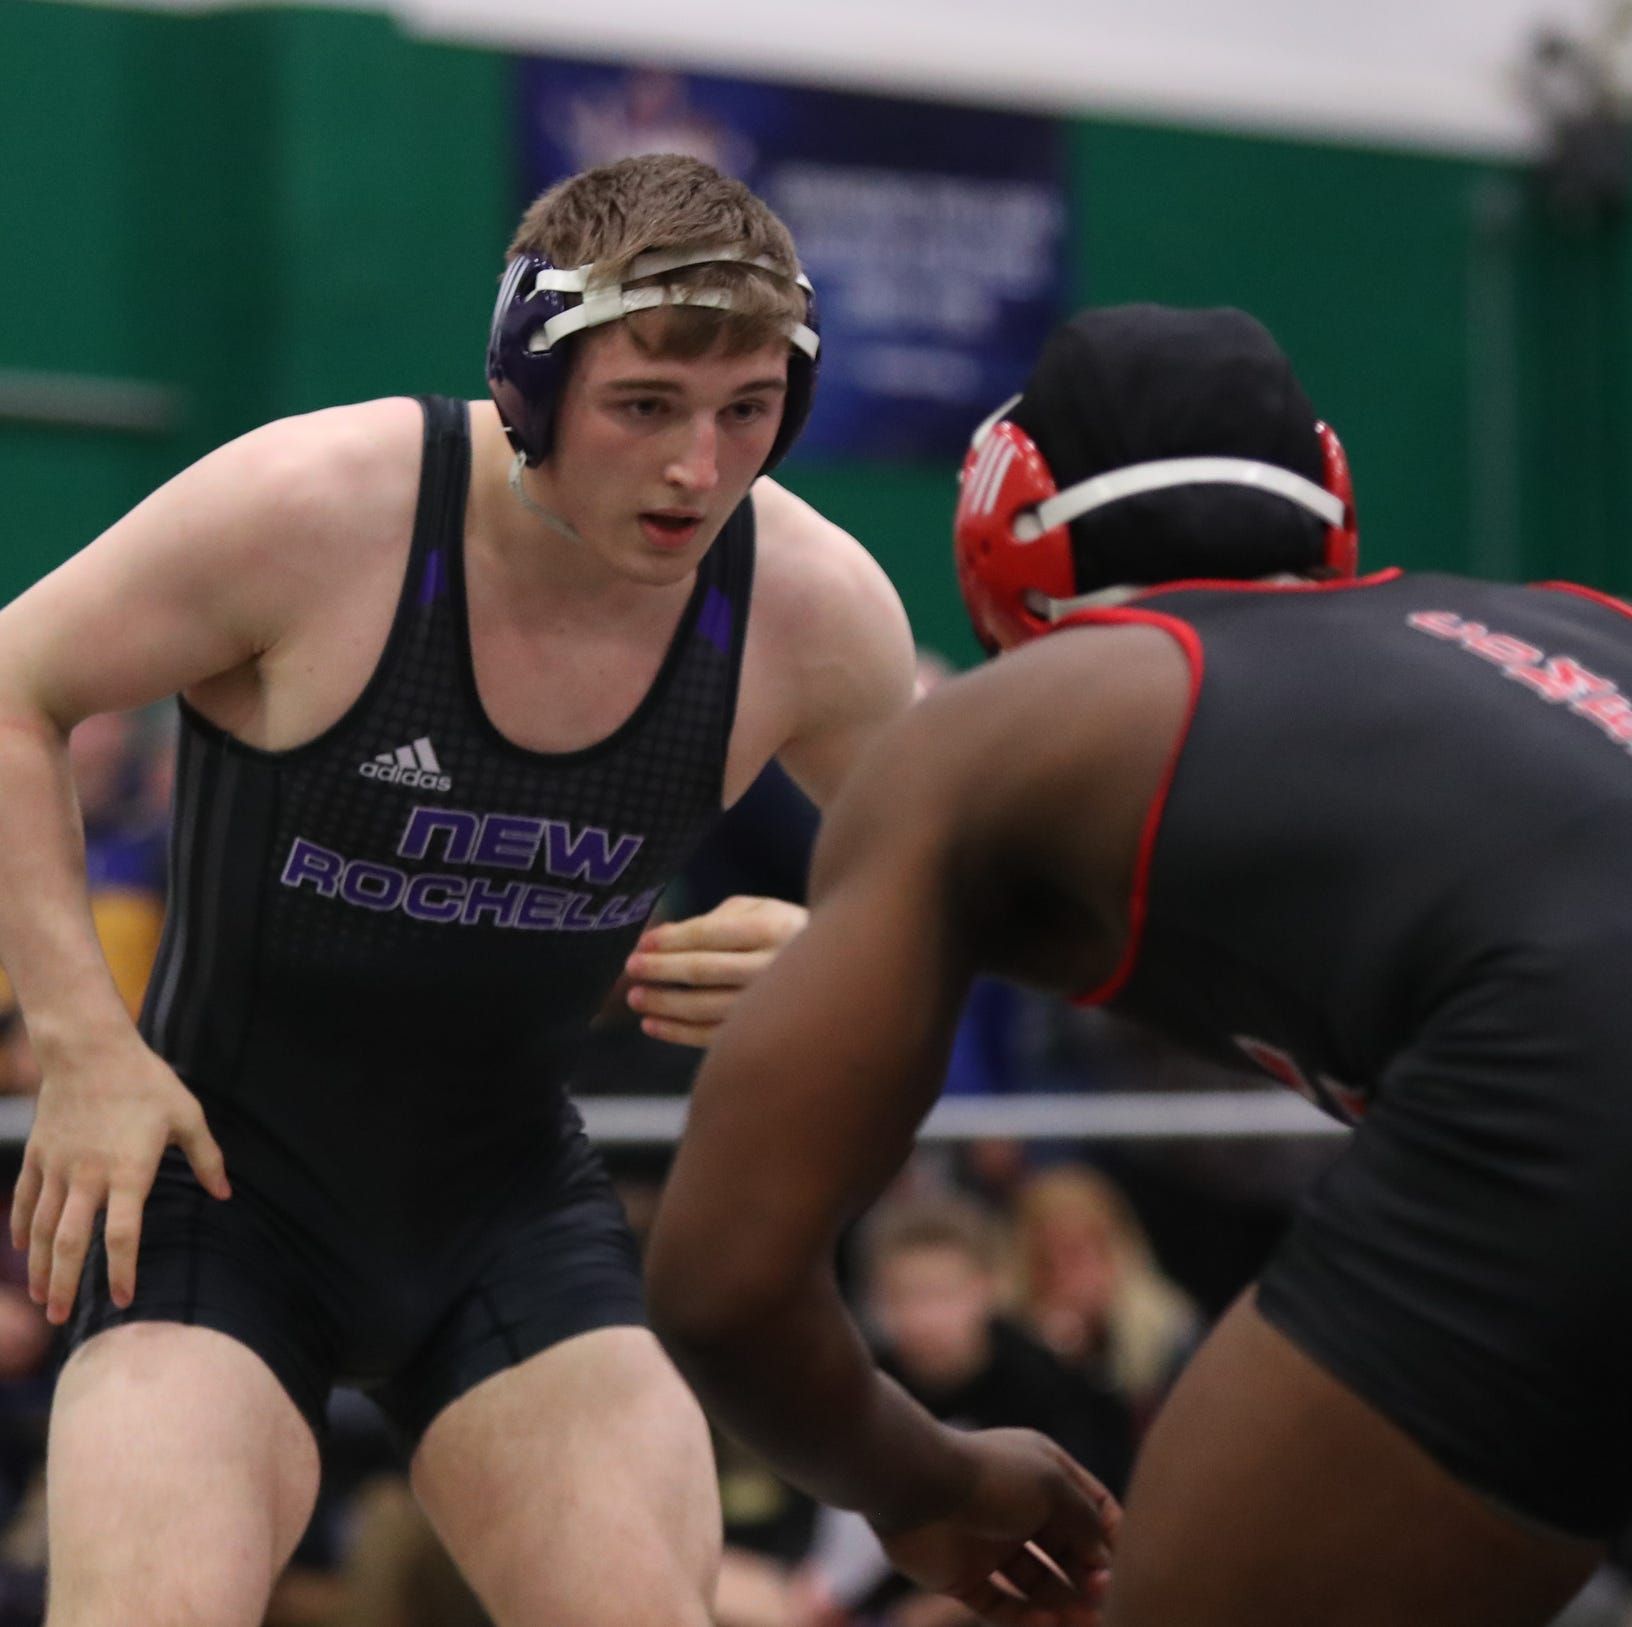 Mercogliano: Albany presents the state's best wrestlers with a chance to make history